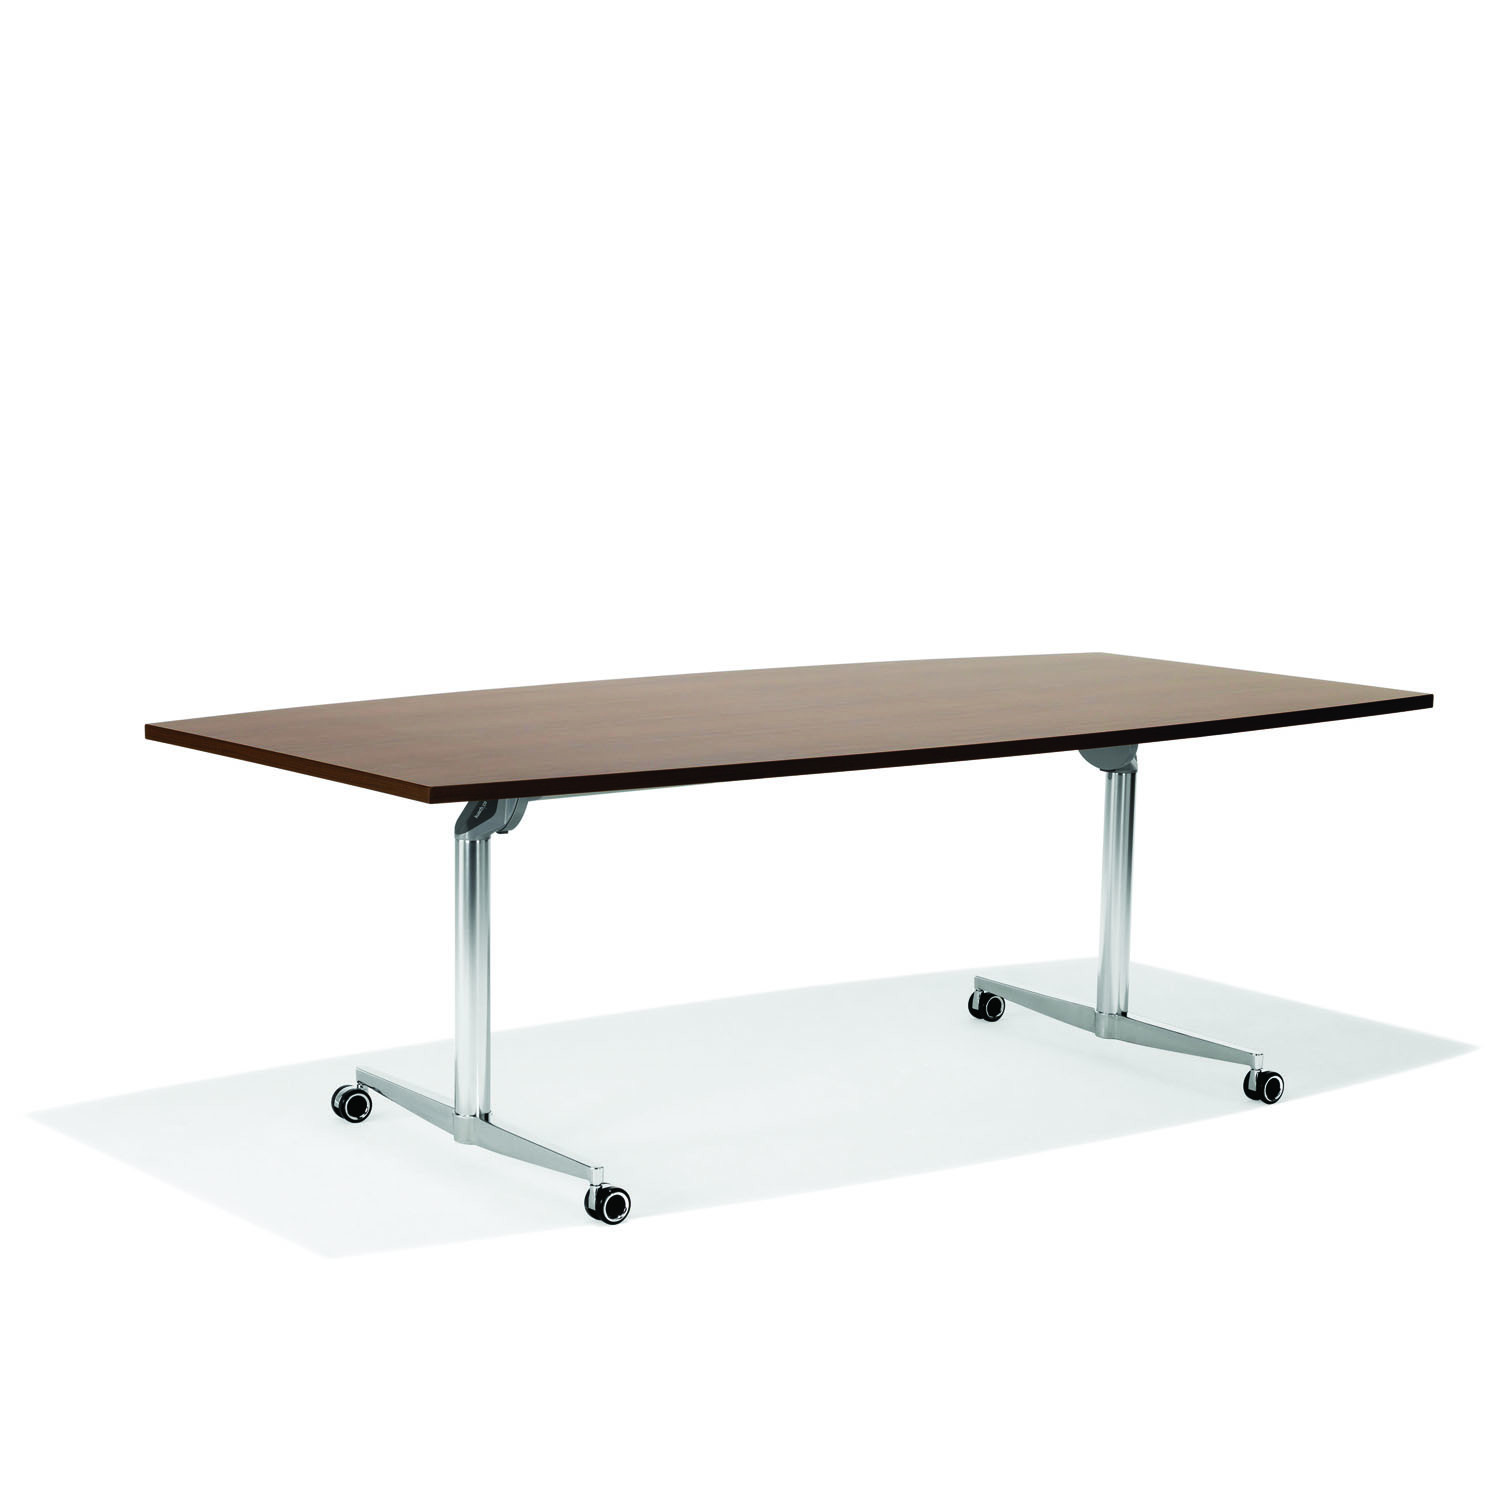 6000 San_Siro Table by Kusch+Co